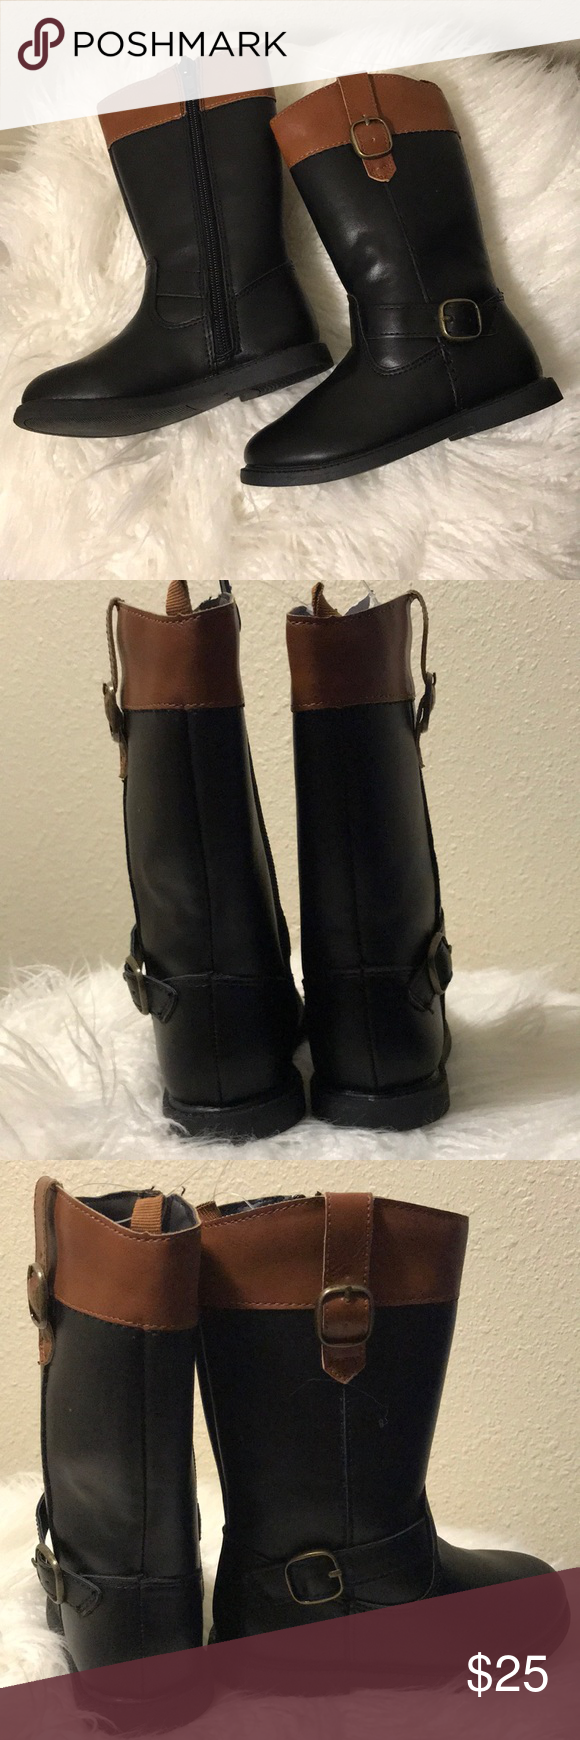 ee689340d97d Carters black and brown boots size 8 girls New. Now box. Carters boots for  girls with inside zipper and 2 buckles as accents. See my other listings  Carter s ...